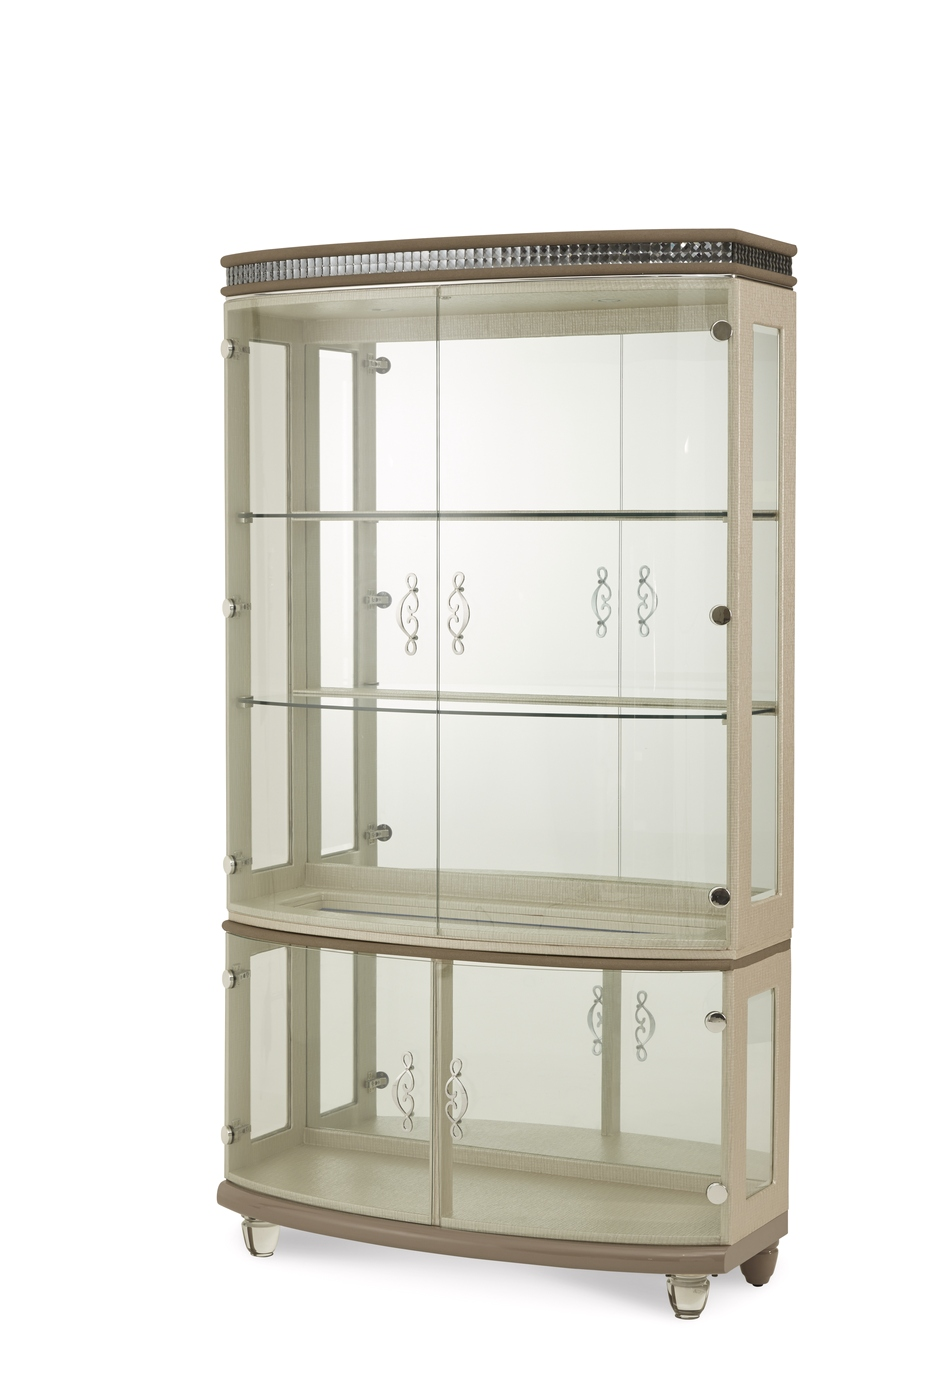 Overture Cristal Beige Glamour Glass Curio Cabinet With